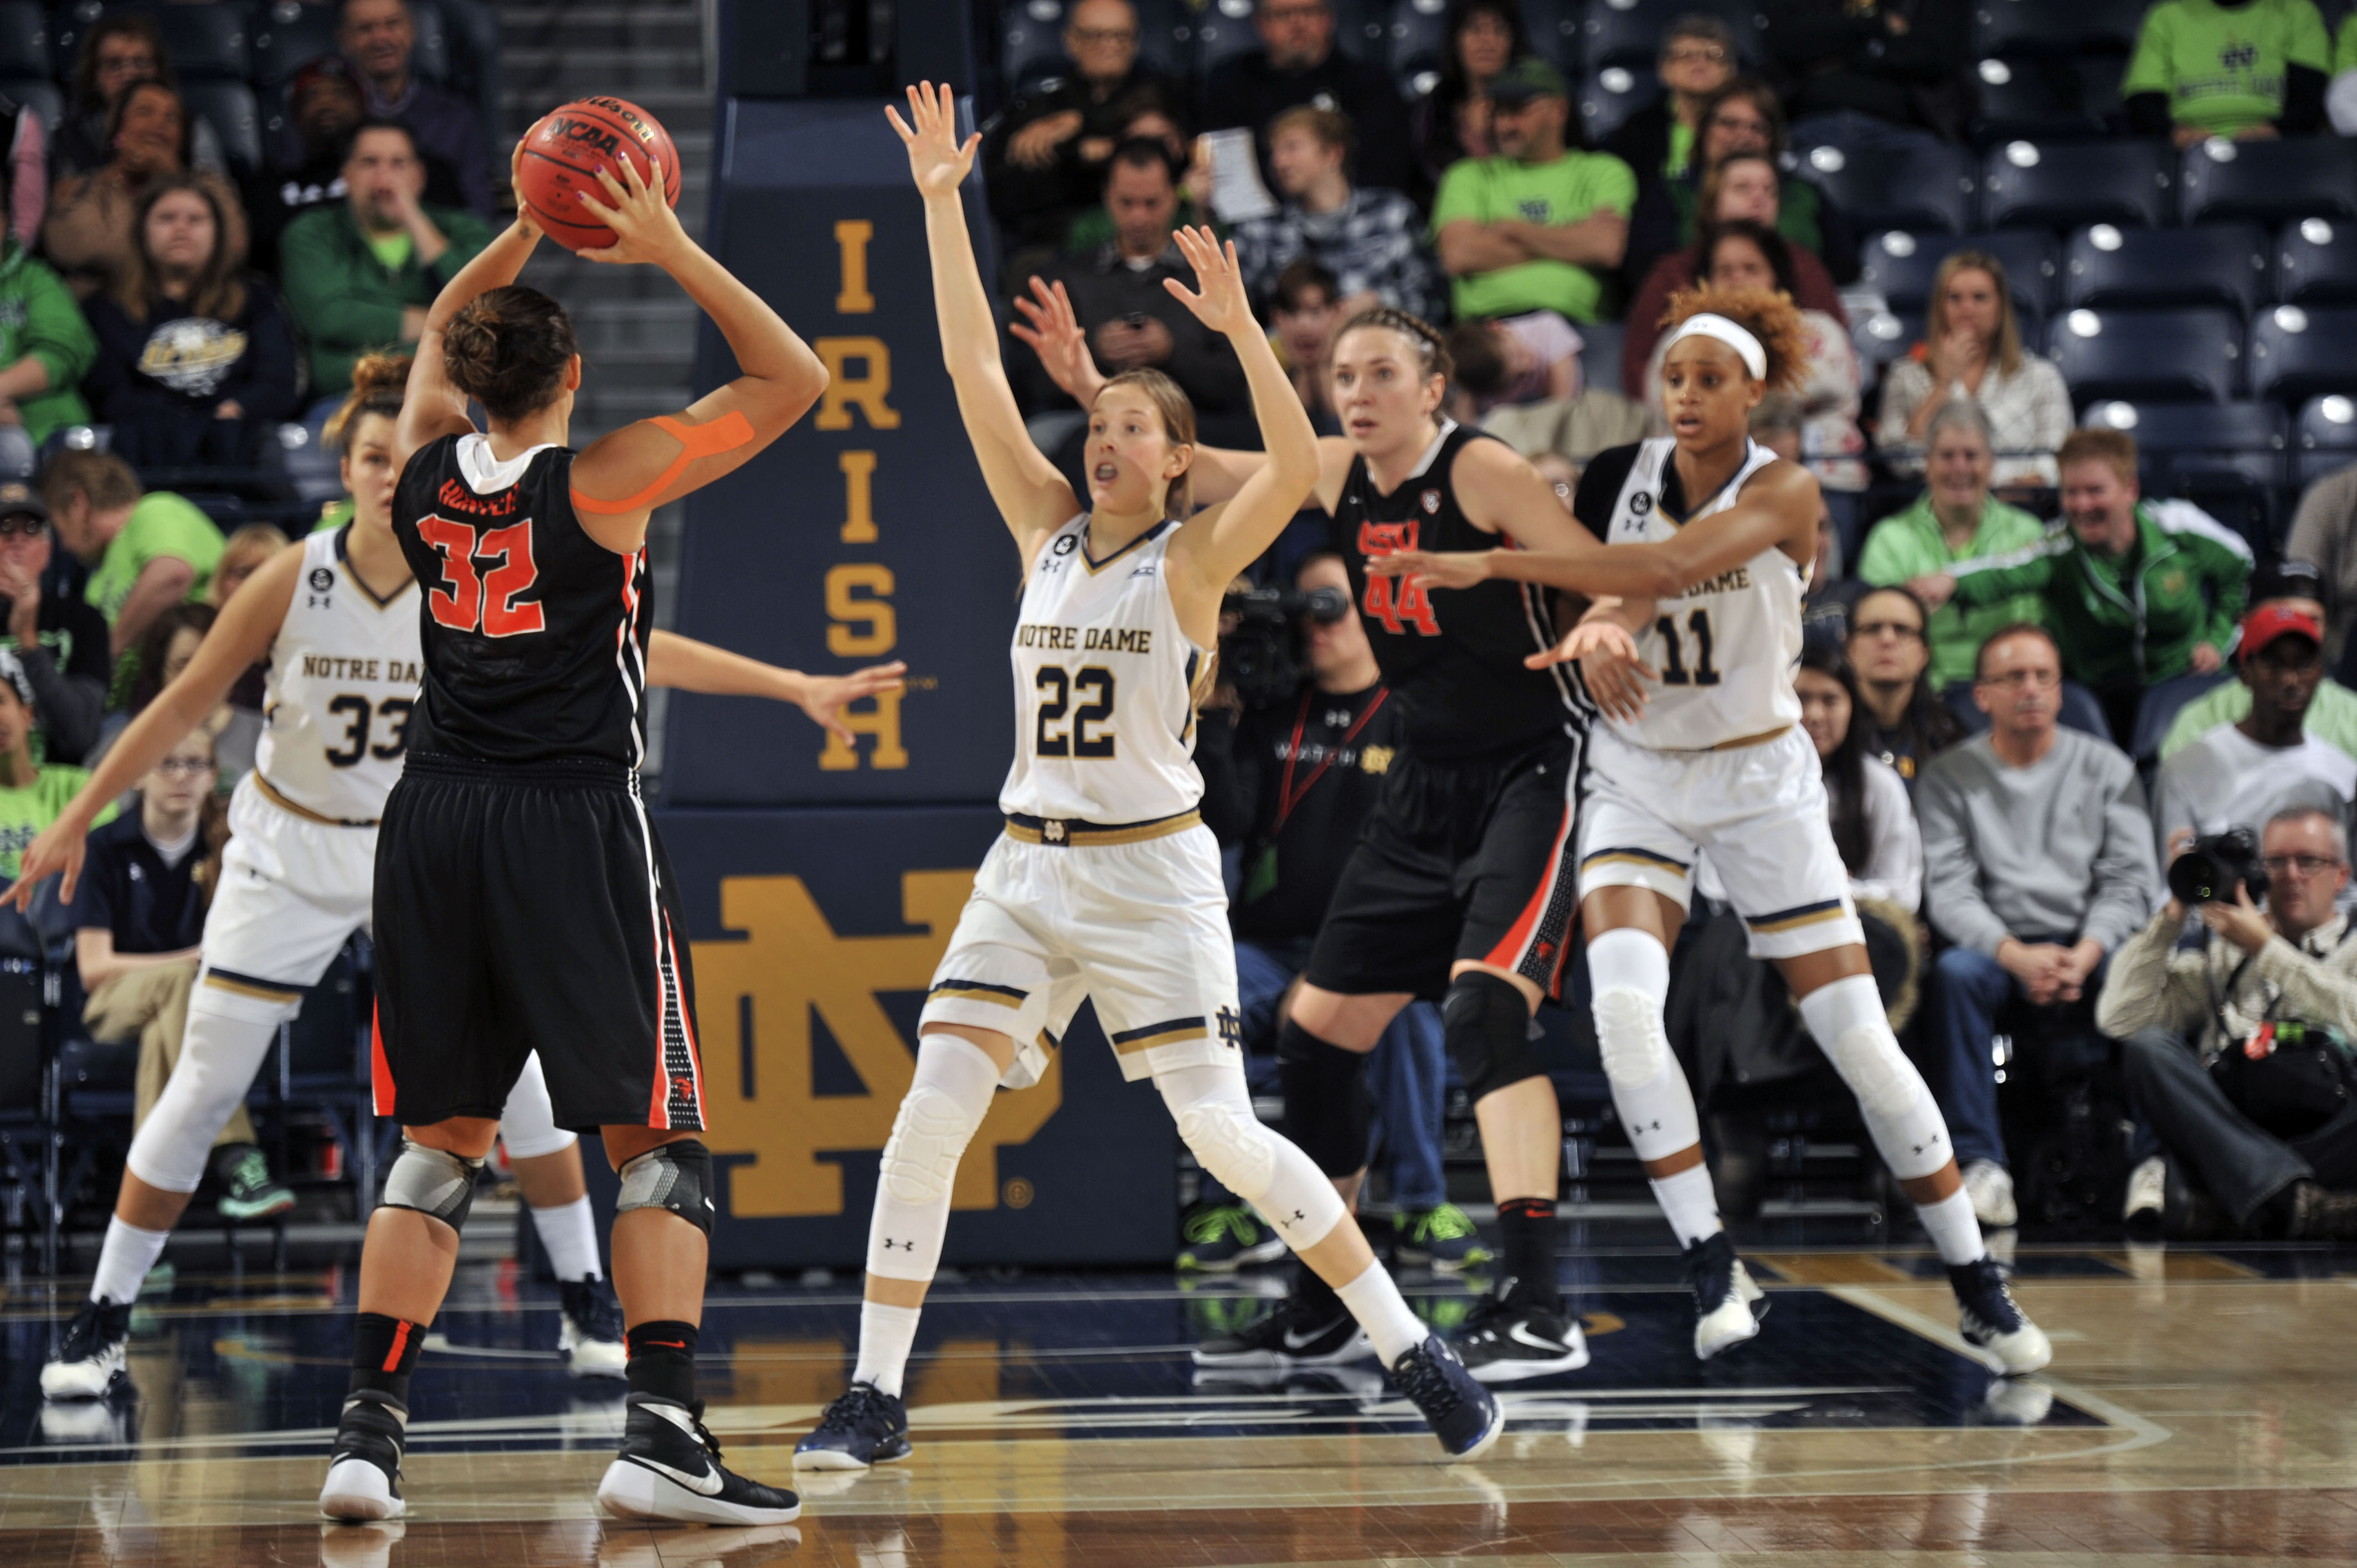 Oregon State forward Deven Hunter throws a pass around Notre Dame guard Madison Cable (22), Oregon State center Ruth Hamblin (44) and Notre Dame forward Brianna Turner (11) during the first half of an NCAA college basketball game, Monday Dec. 28, 2015 in